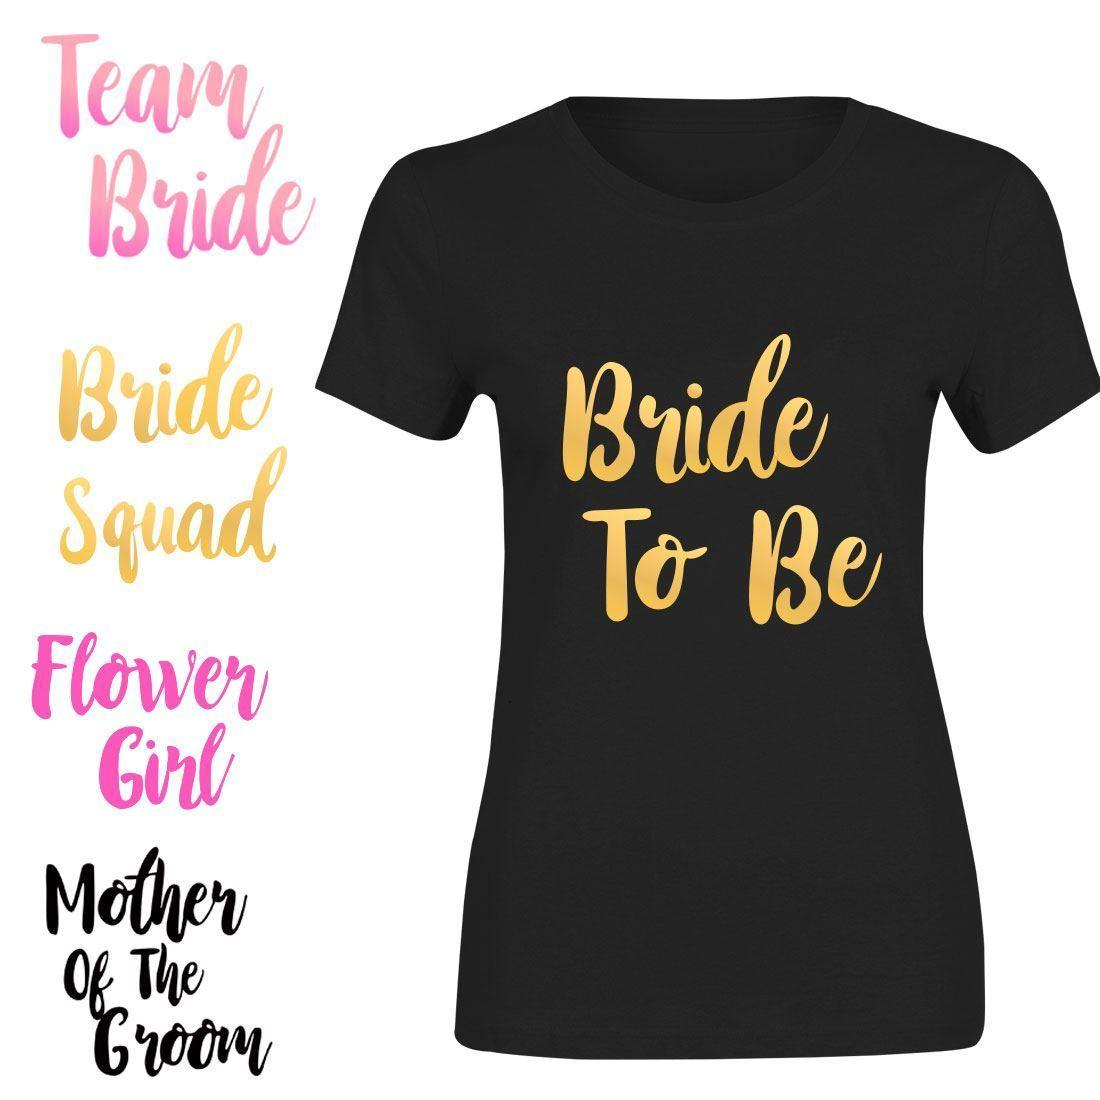 ccc0ee924 Chief Bridesmaid Bride Tribe Iron On T Shirt Transfer Auntie Hen Do Party  Crew Men Women Unisex Fashion Tshirt Tshirt And Shirt Shirts Cool From ...